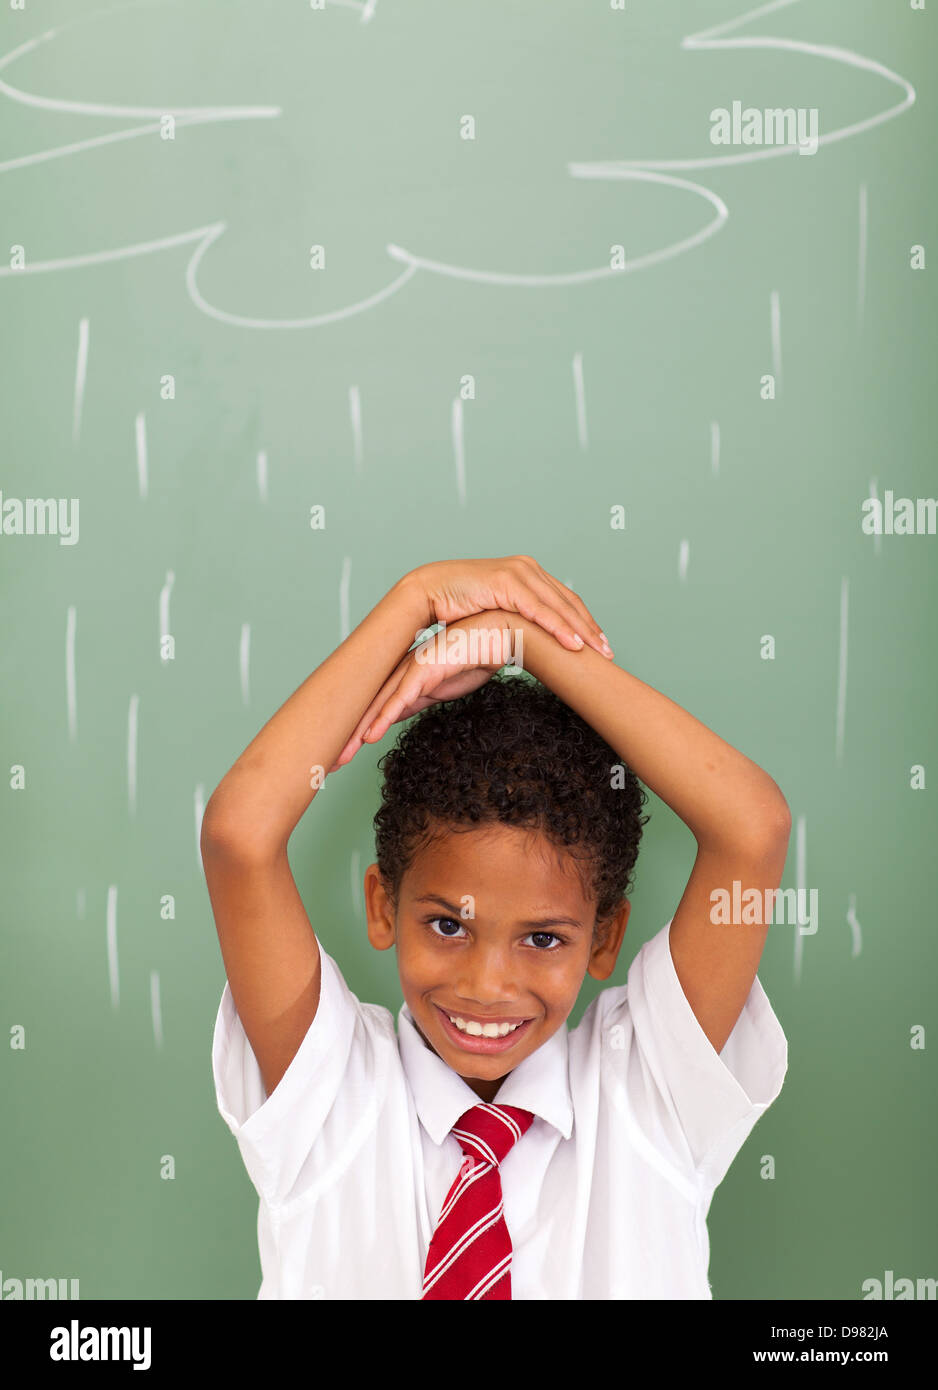 elementary school student in front of rain cloud drawn on chalkboard - Stock Image